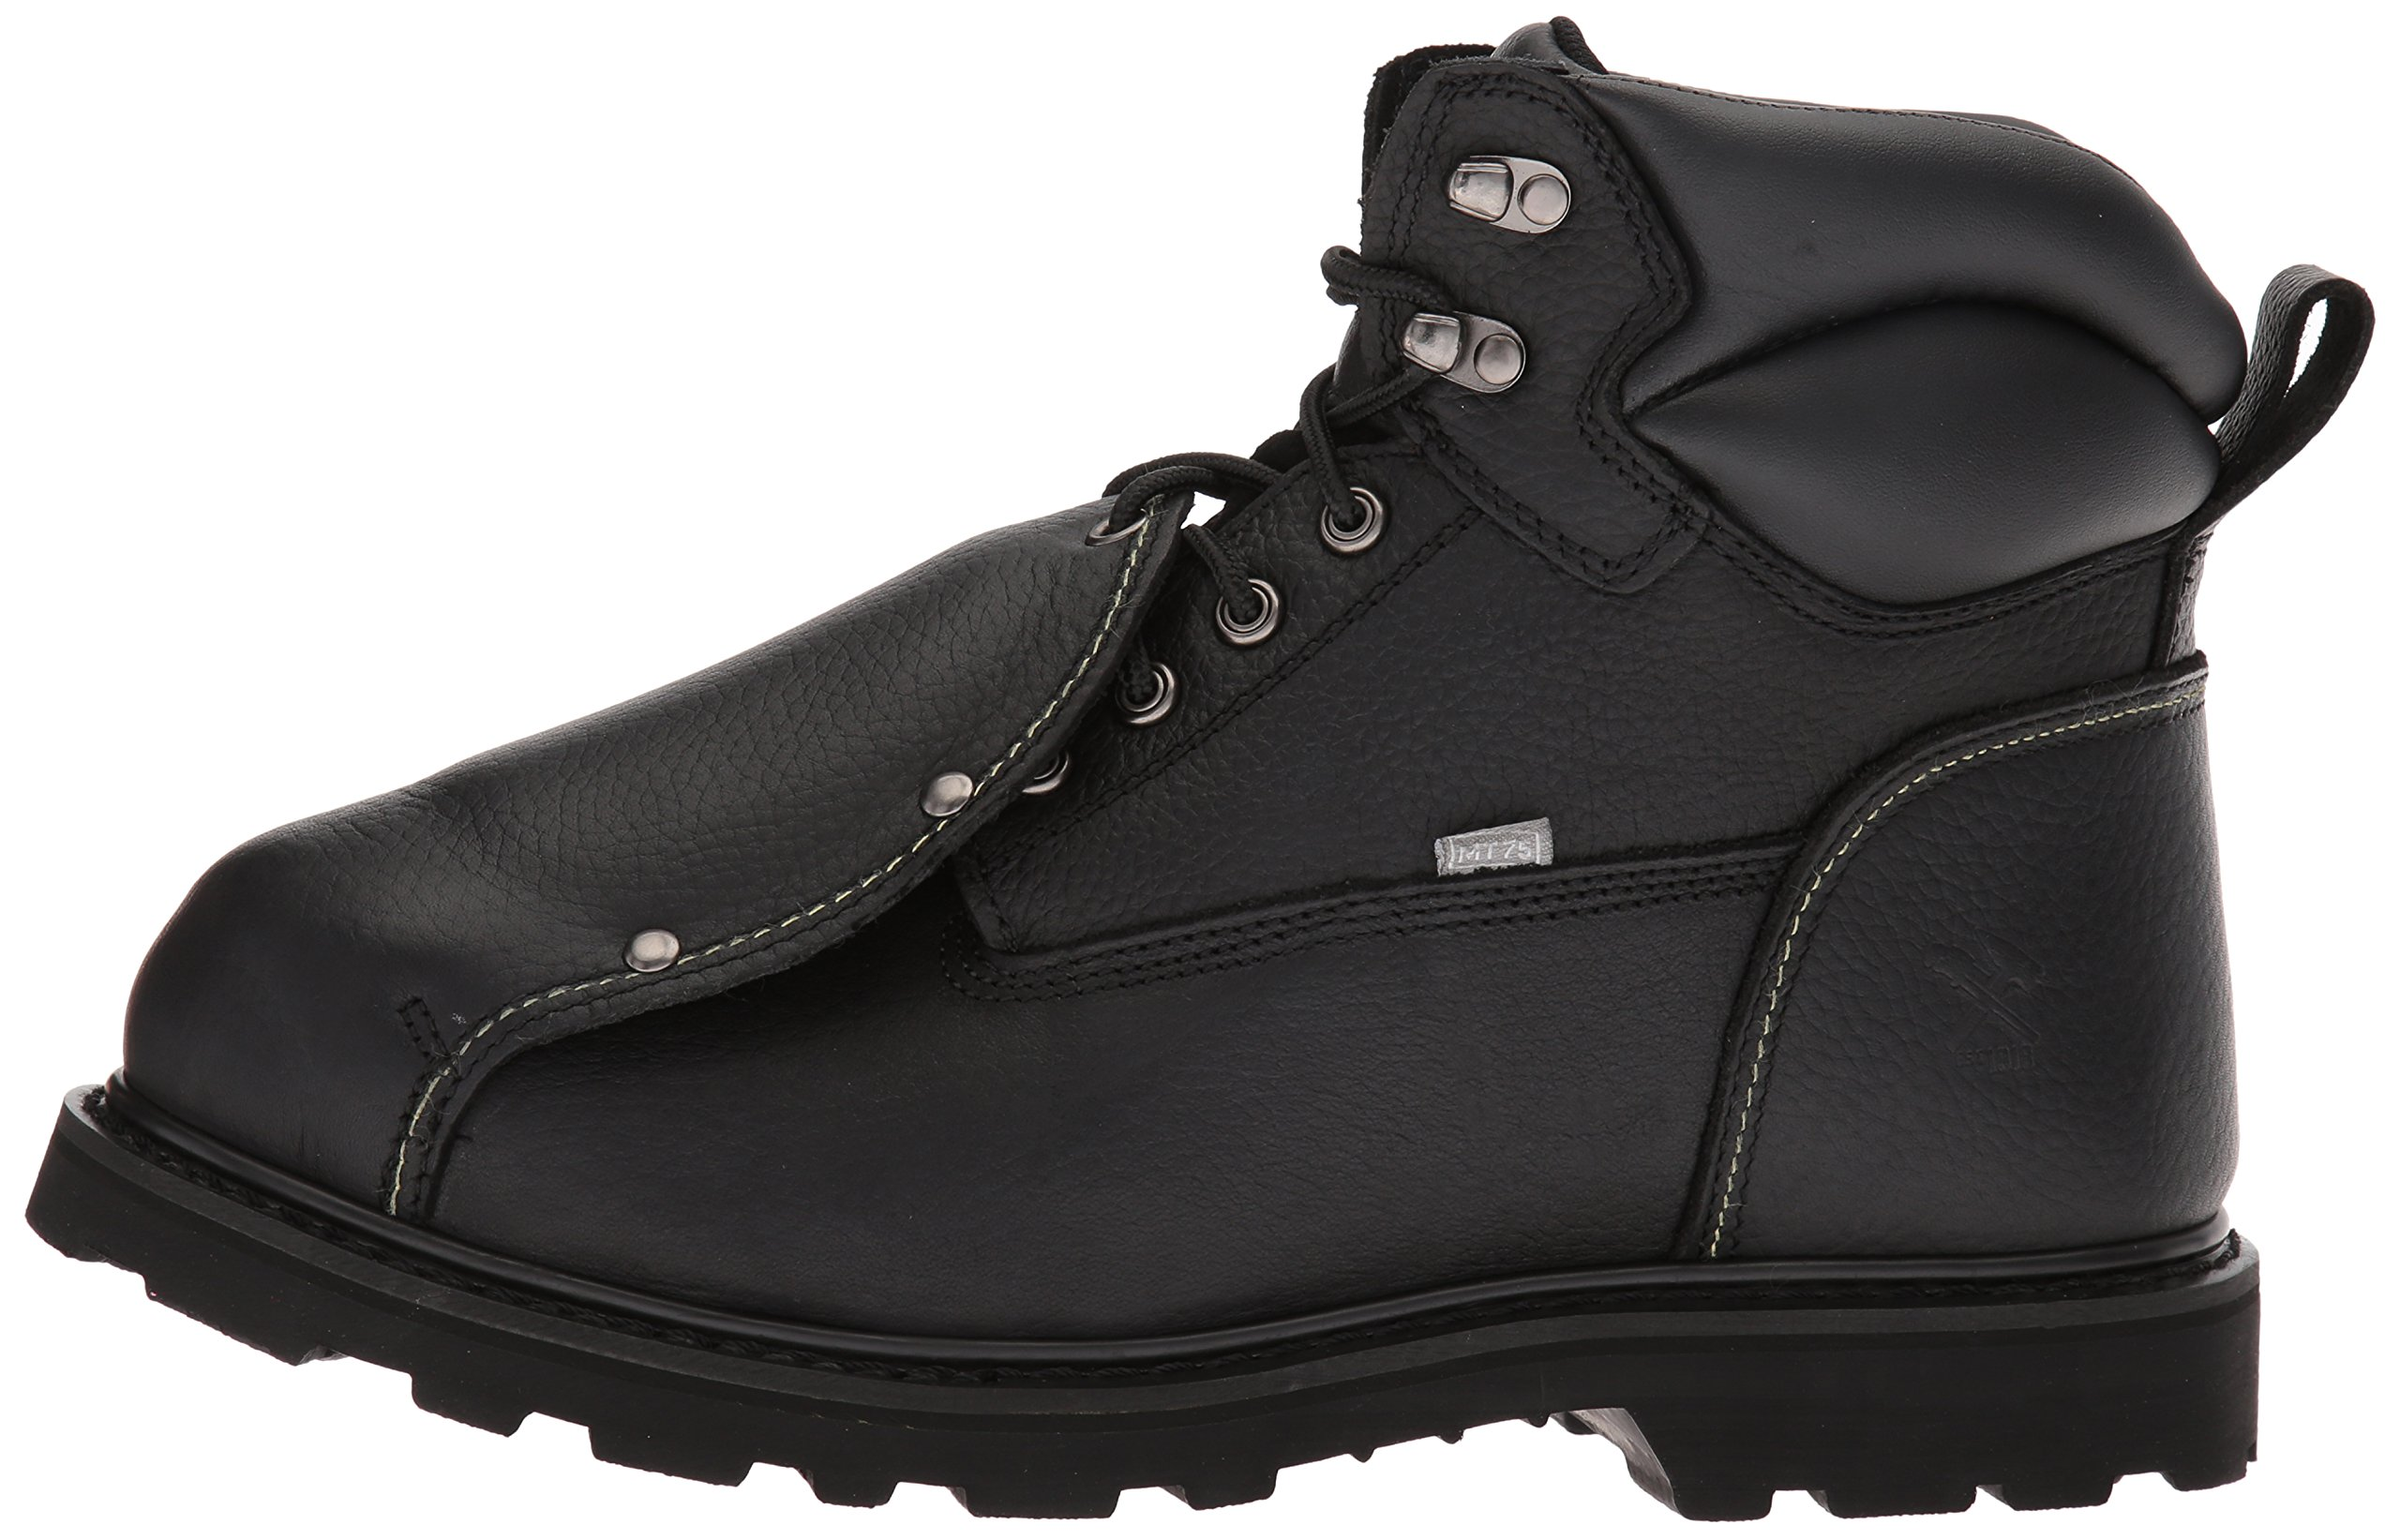 Iron Age Men's Ia5016 Ground Breaker Industrial and Construction Shoe, Black, 10.5 M US by Iron Age (Image #5)